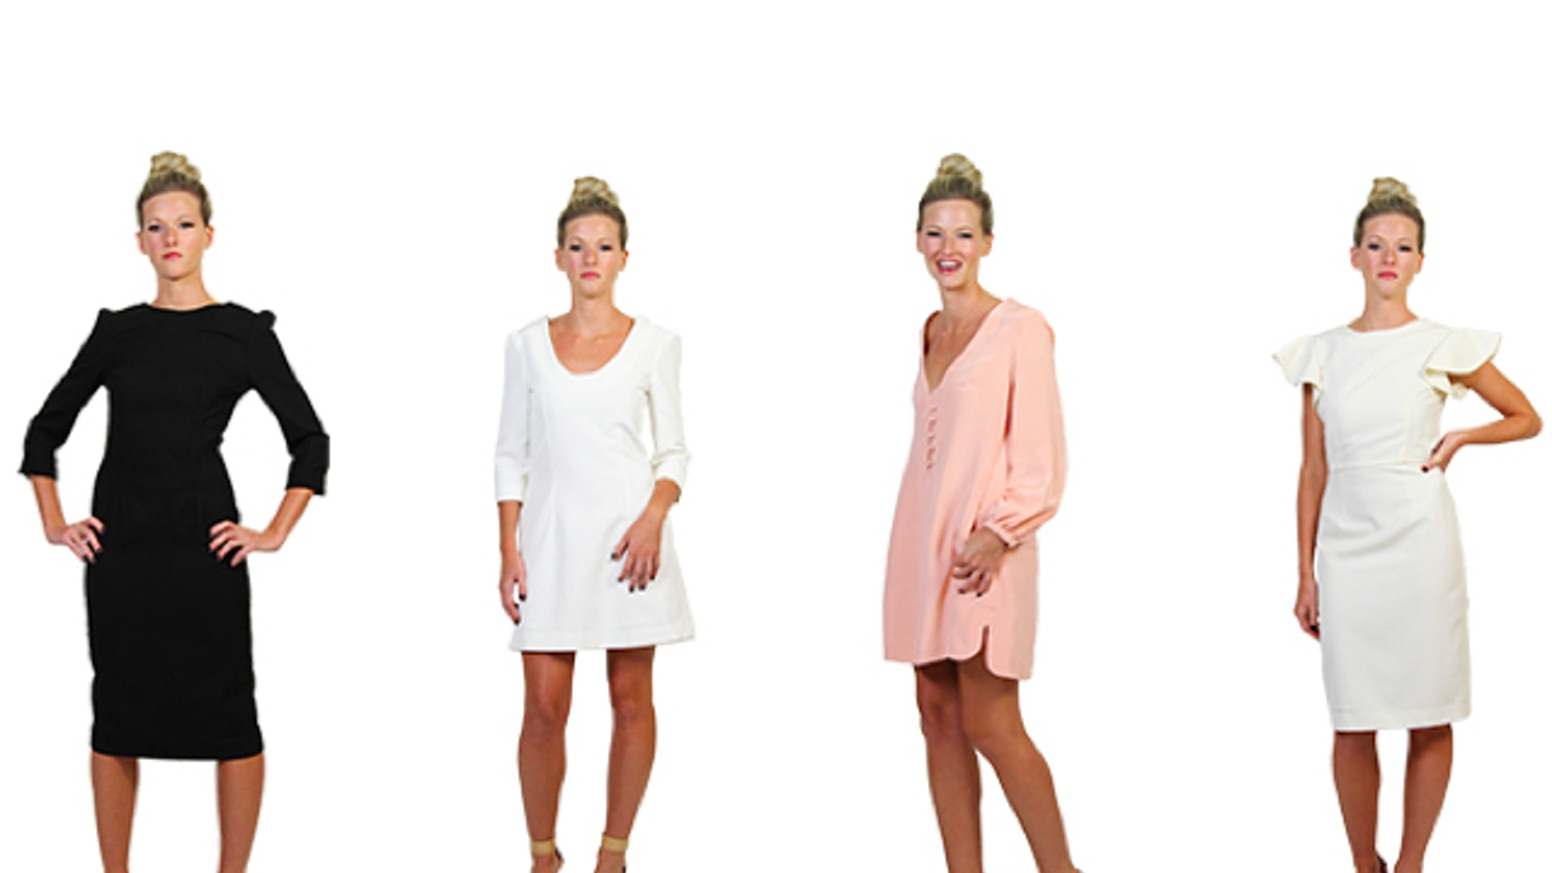 Ramey Rhodes is a small North Carolina-based women's clothing line, proudly designed in Raleigh and made in the U.S.A.